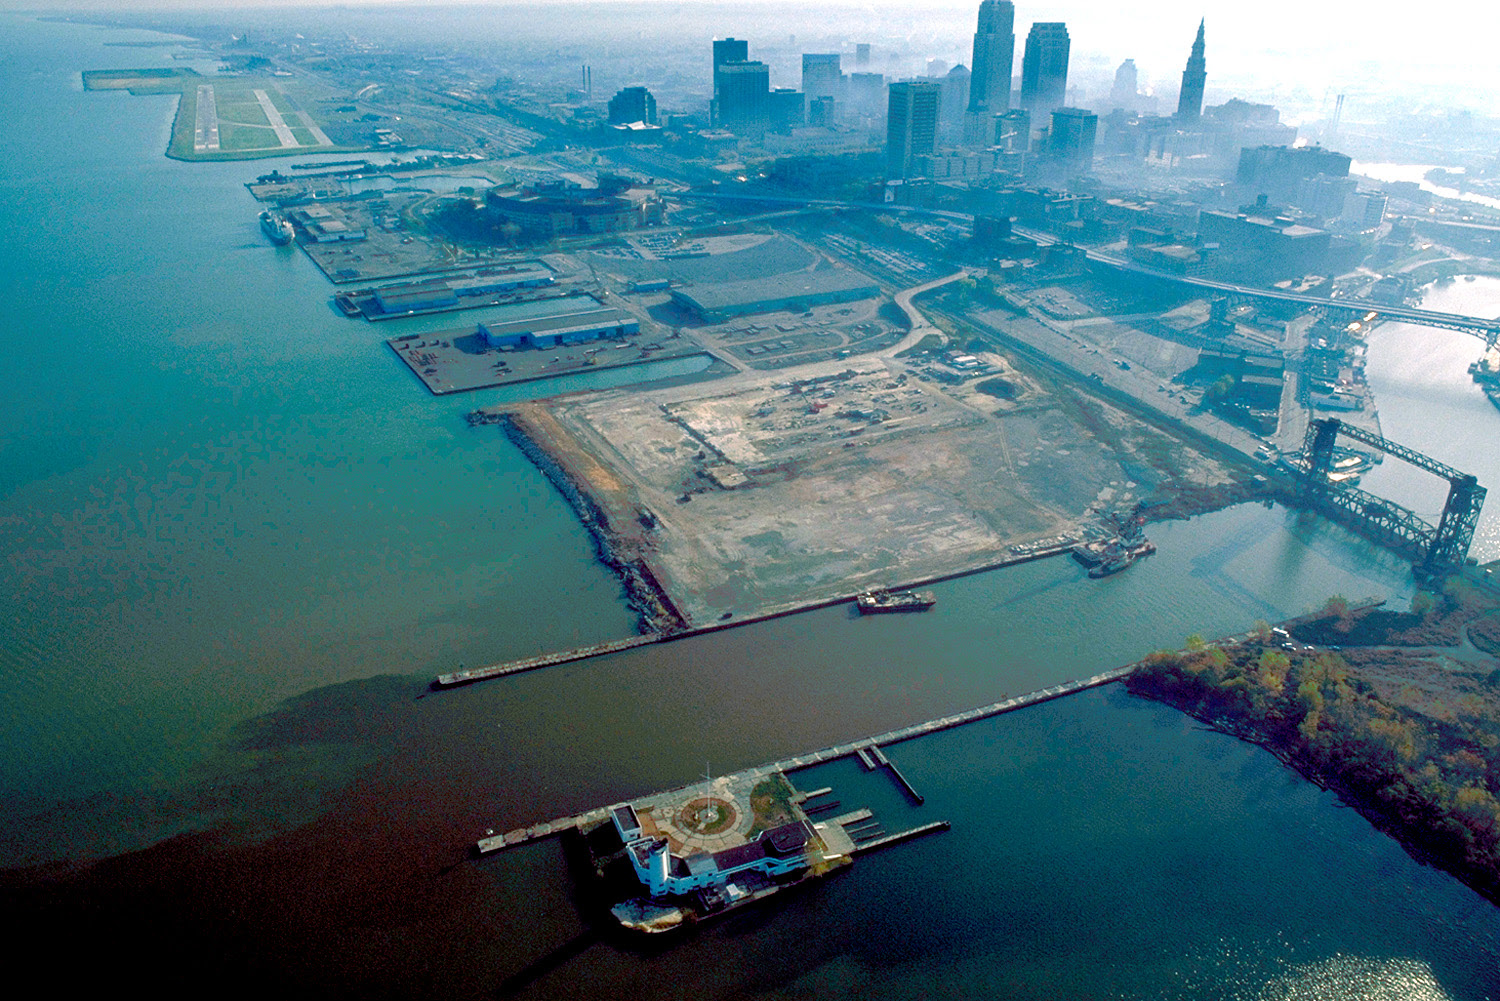 1992 aerial view of the Cleveland harbor, with the mouth of the Cuyahoga River in the foreground. View is to the east.